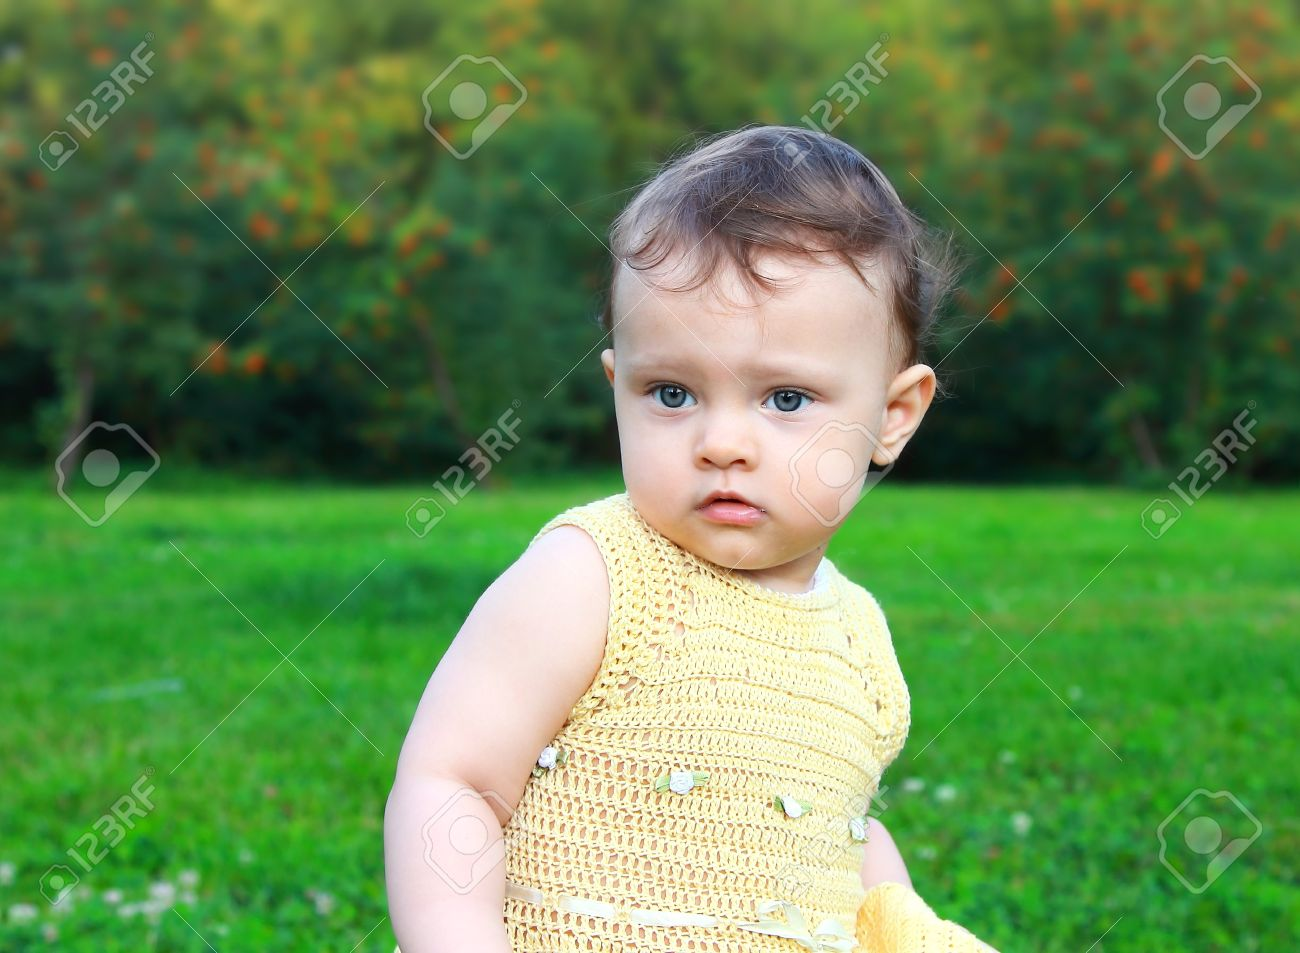 Beautiful surprised baby girl looking on nature green background  Fun closeup portrait Stock Photo - 14715970